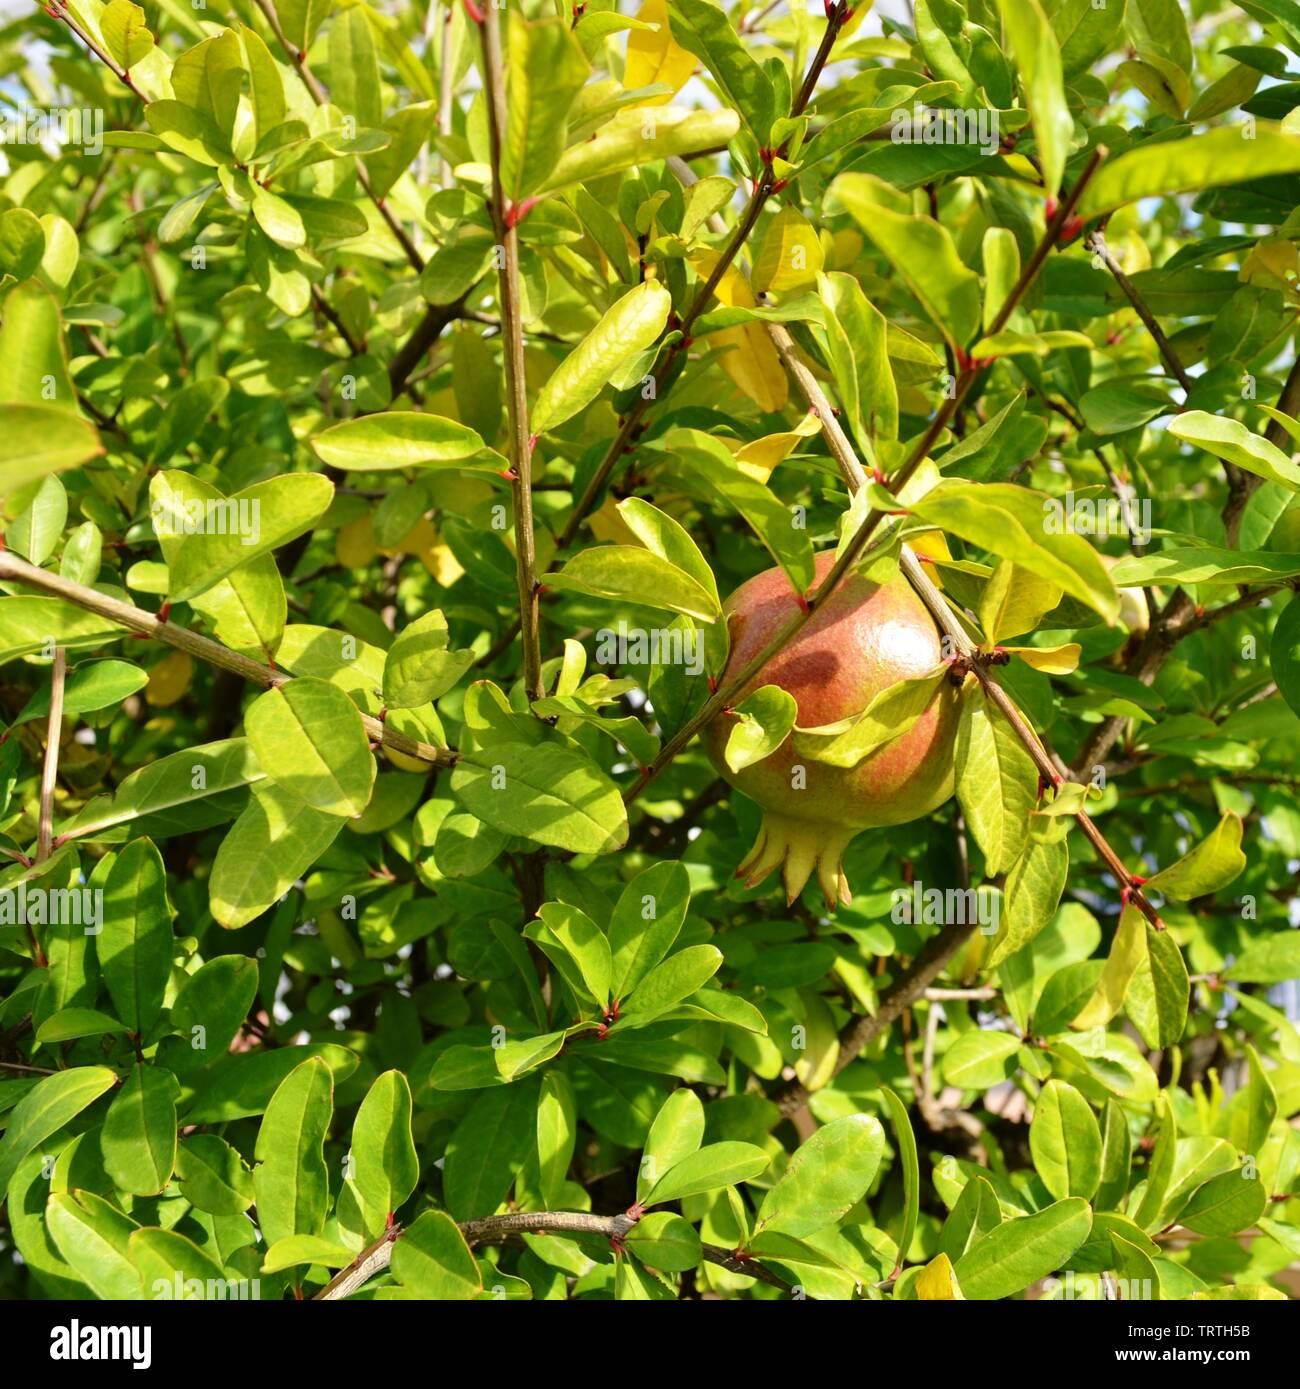 Red pomegranate fruit brightly illuminated by sunshine in the middle of leaves and twigs. Stock Photo